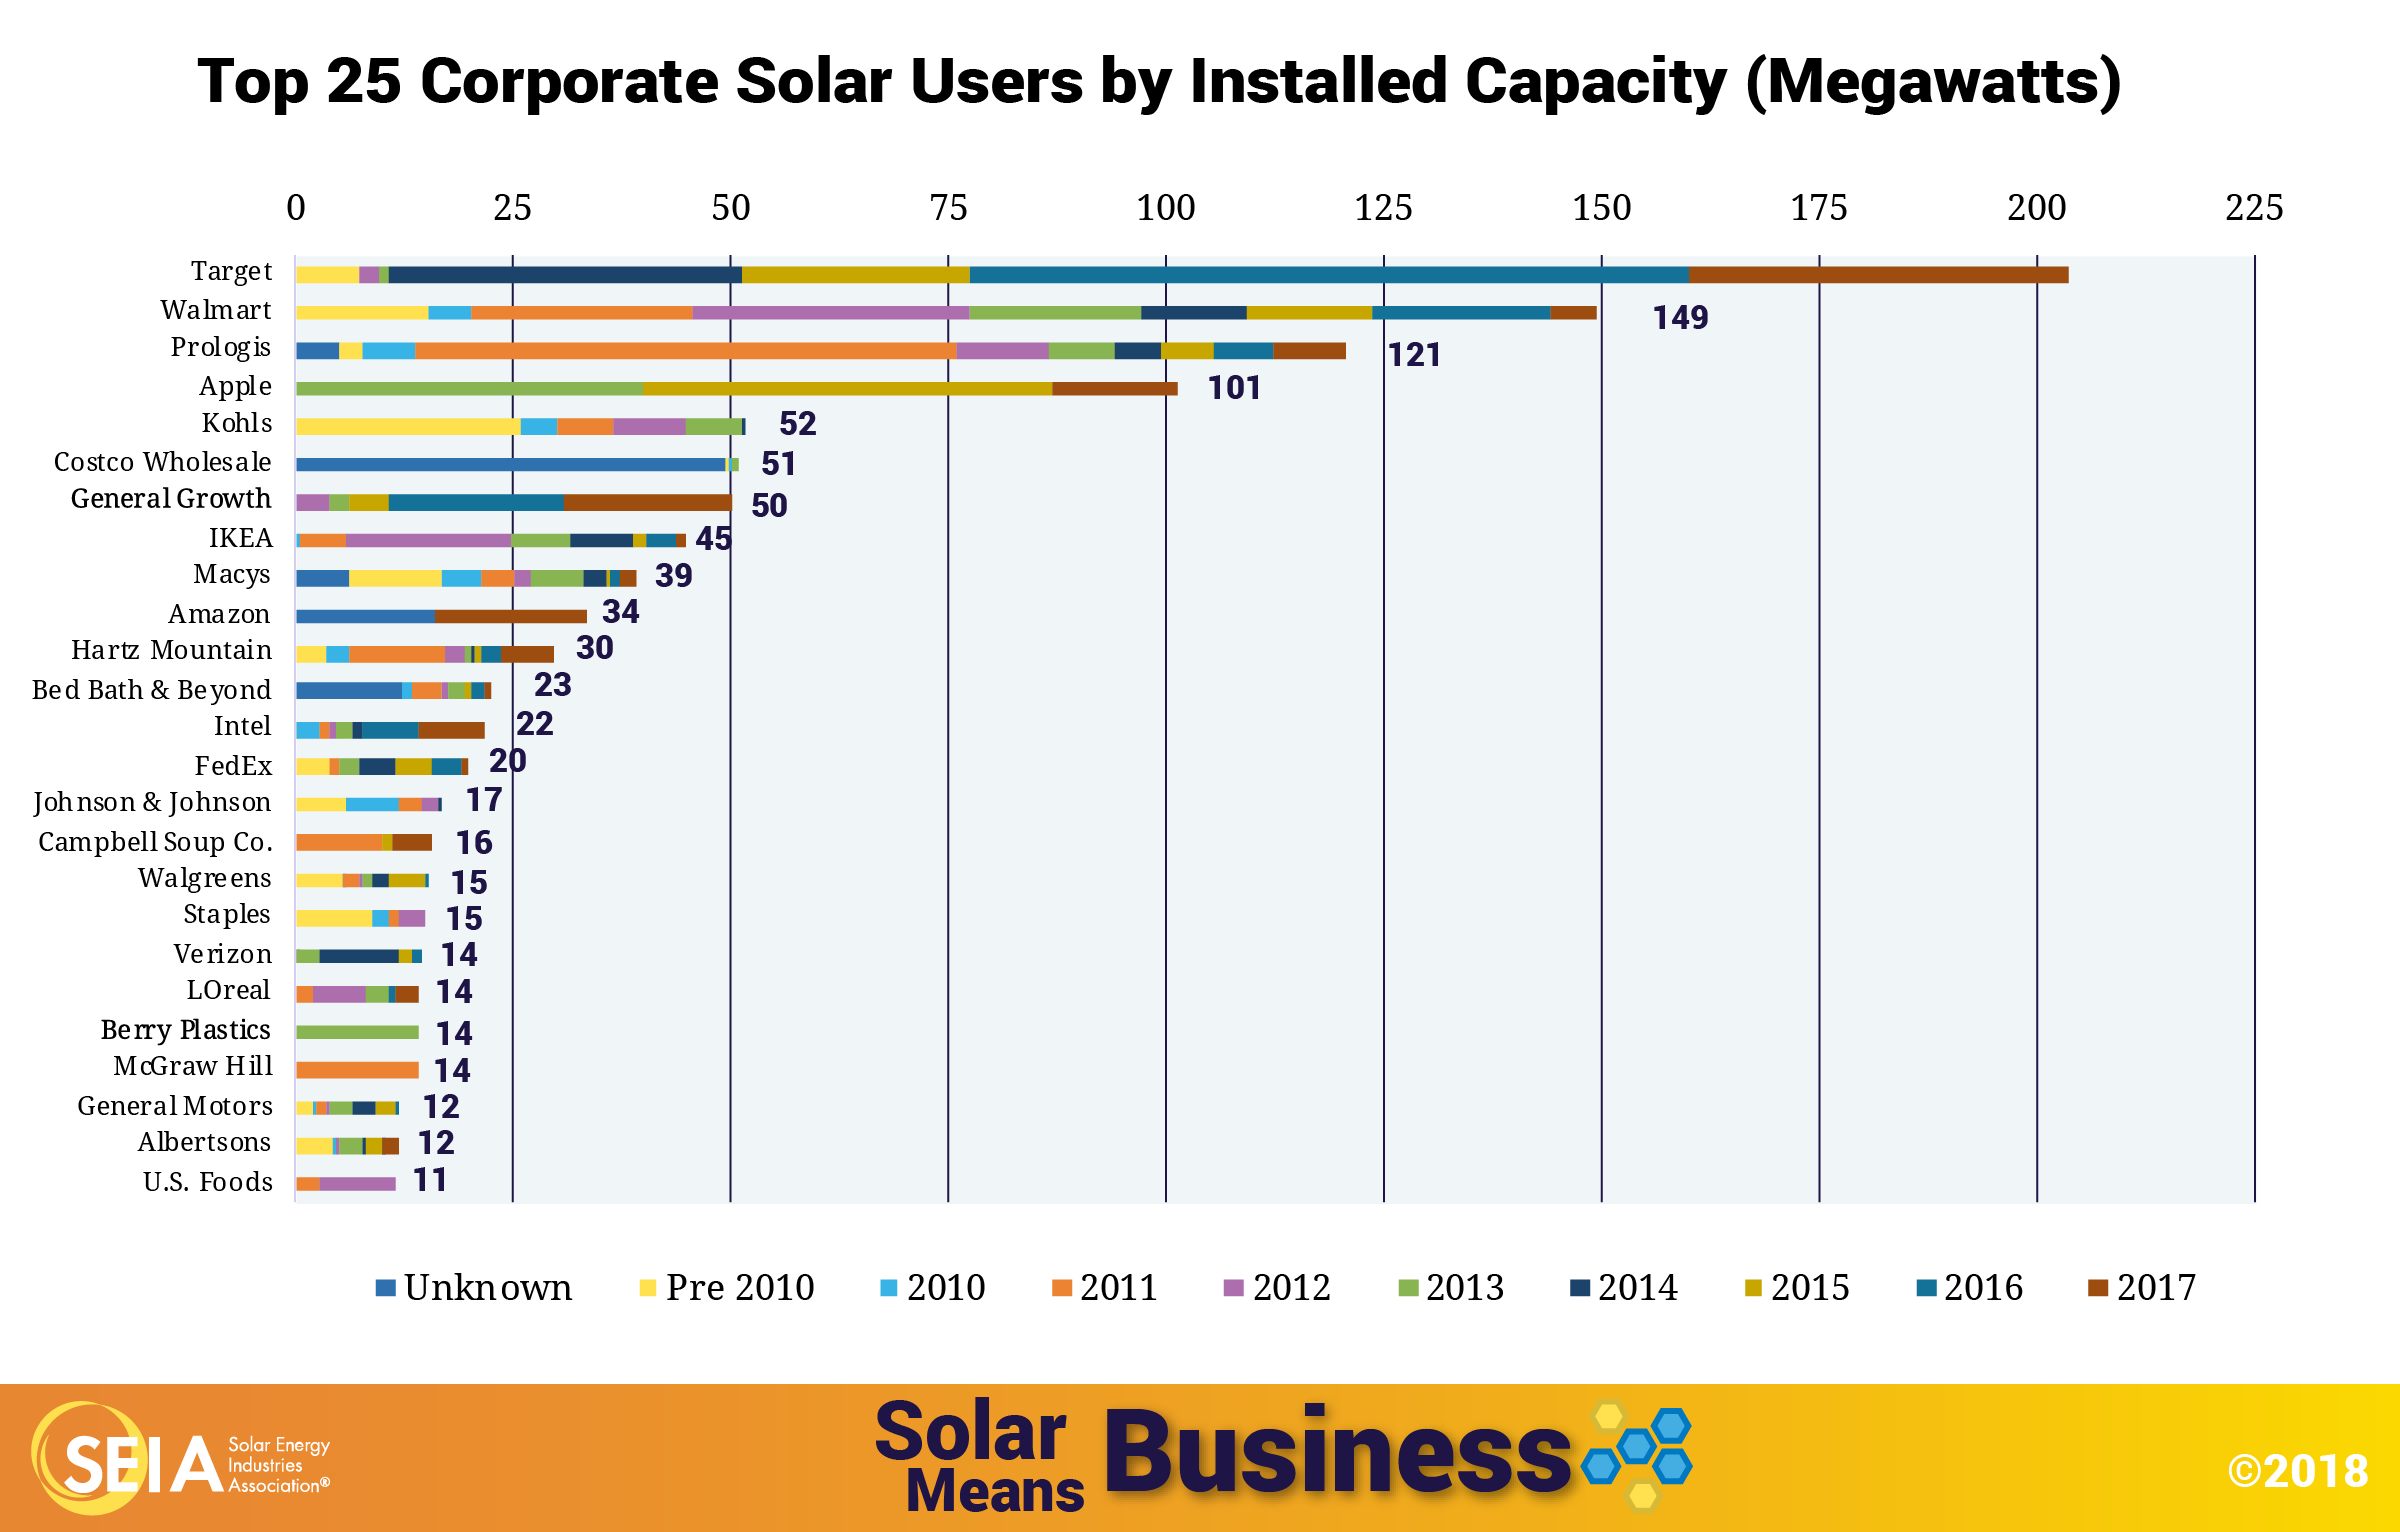 Prologis ranks 3rd in installed solar capacity.